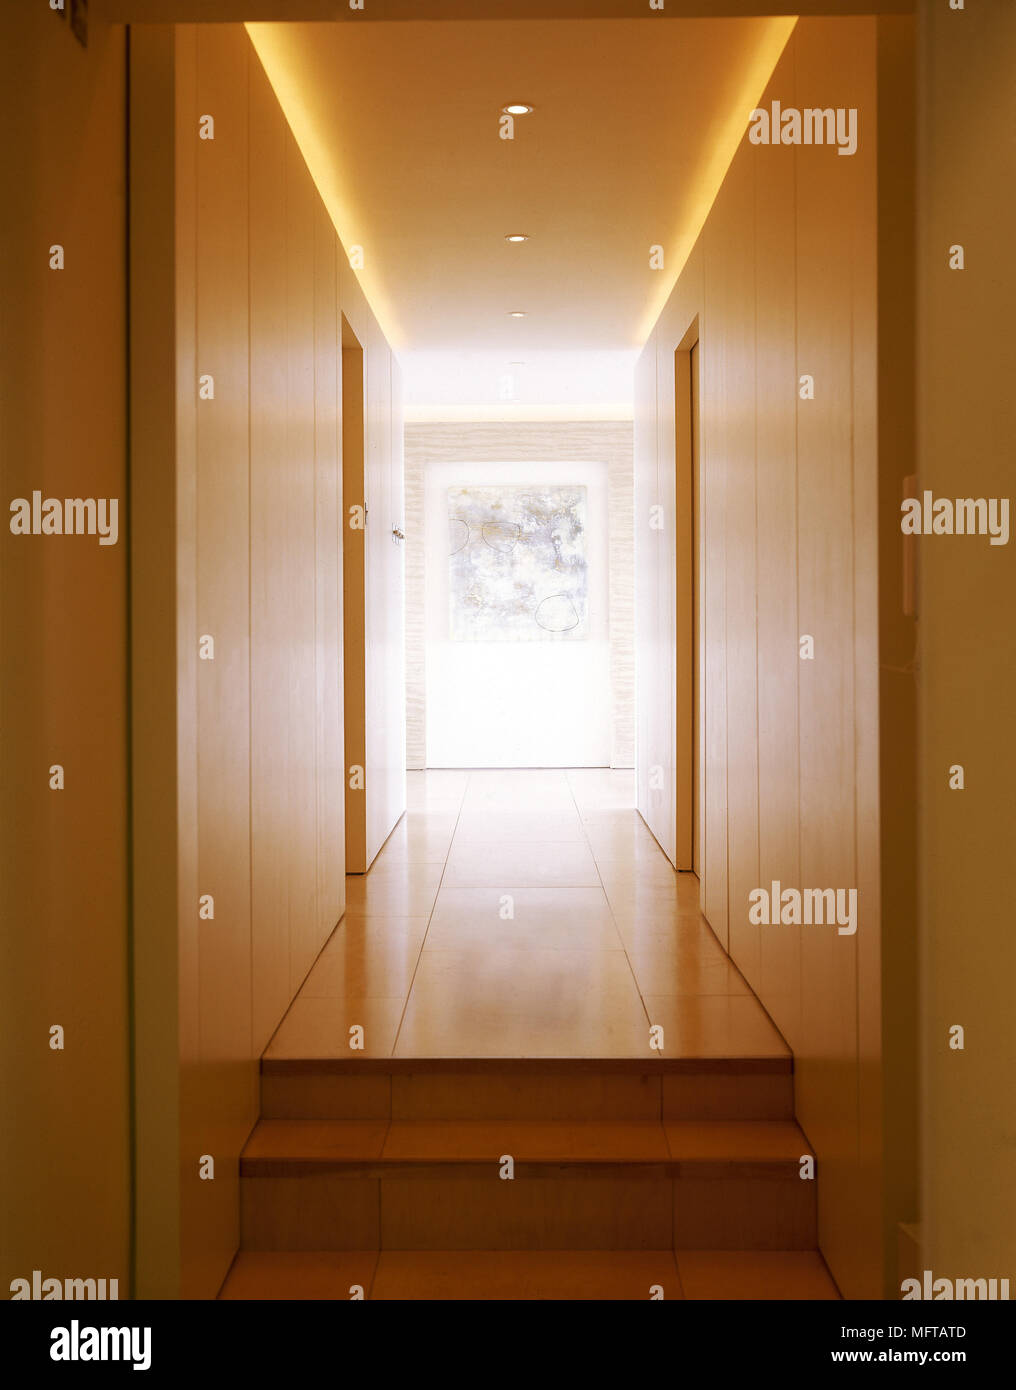 Steps up to a modern hallway with a tiled floor, doorways, wooden panelling, and ambient lighting. - Stock Image